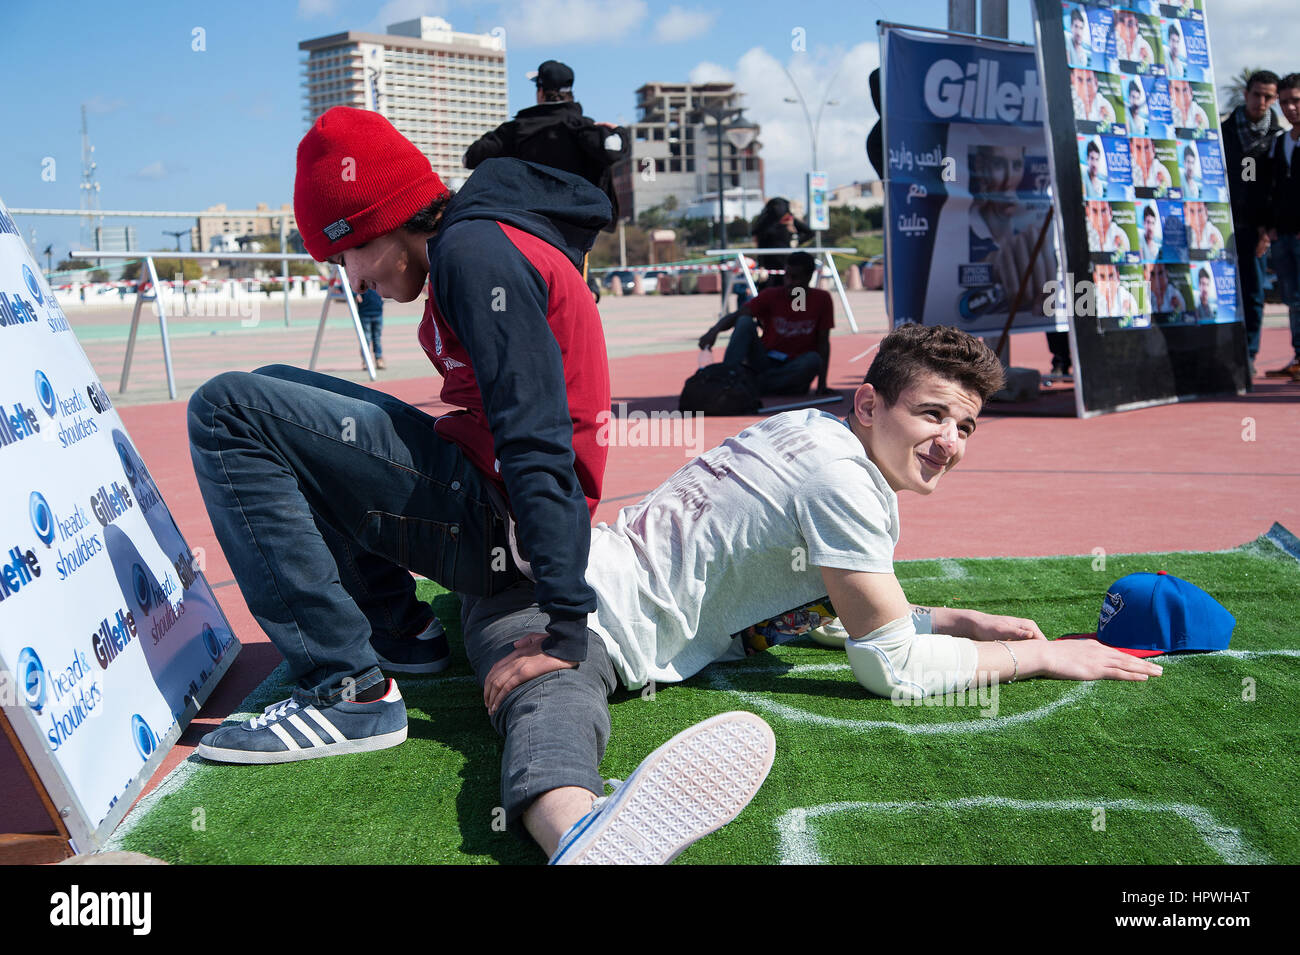 Libya, Tripoli: Young guys breakdance at an open air dance and parkour festival. - Stock Image